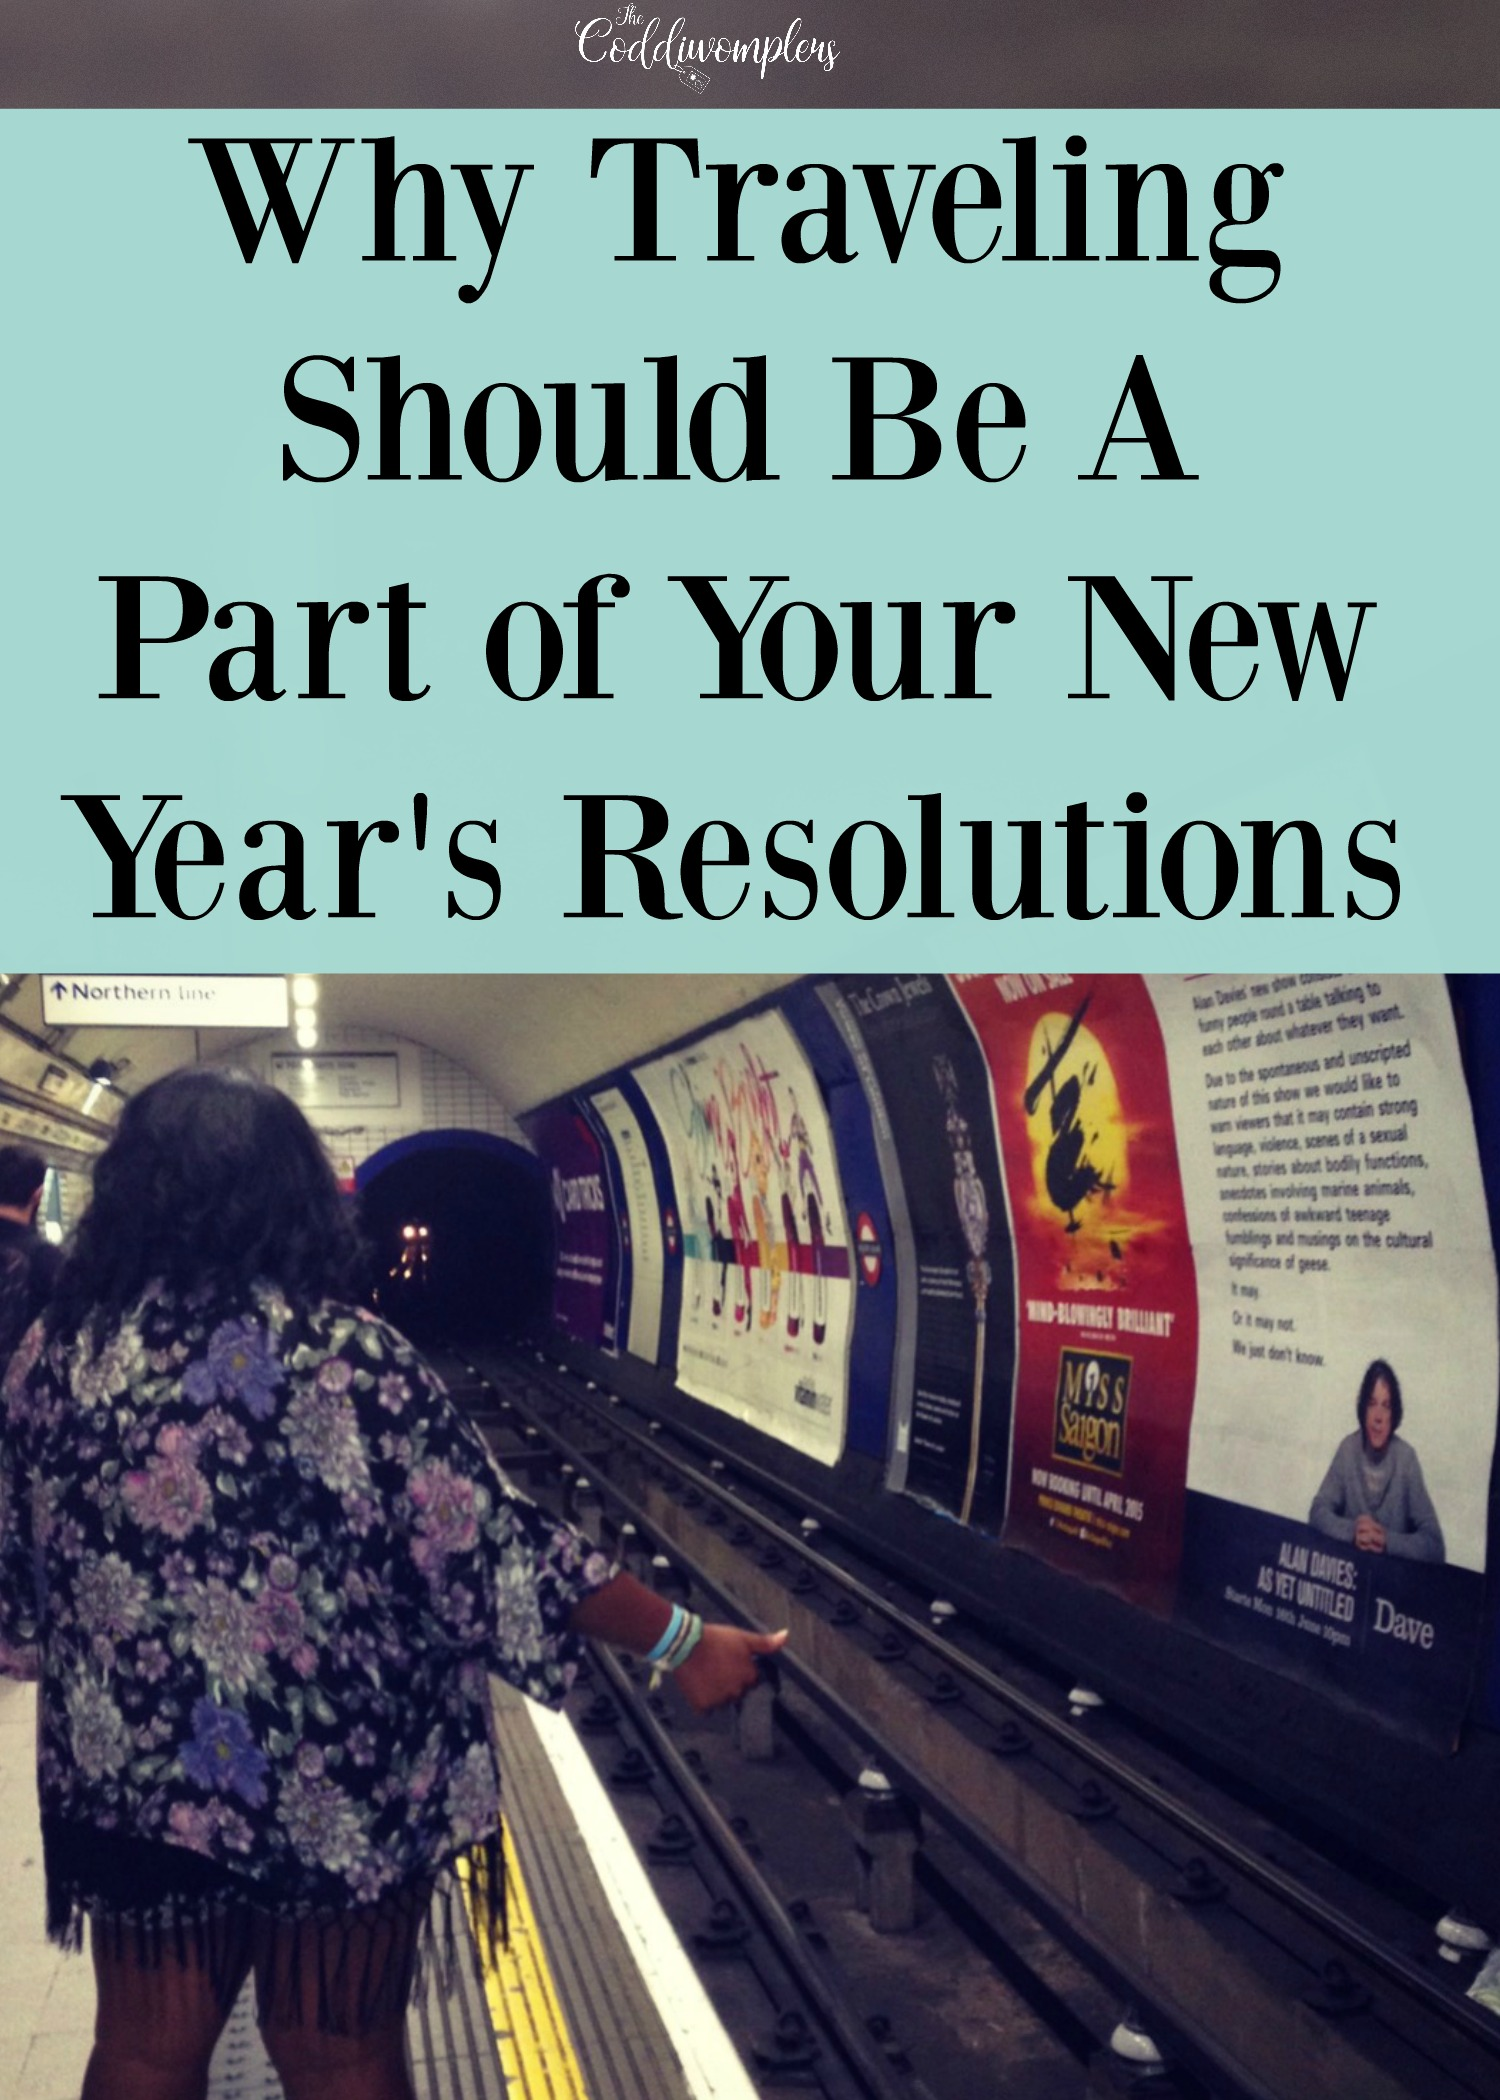 New year, new you and you have a list of things to accomplish. What about traveling? Here is why traveling should be part of your new year's resolutions